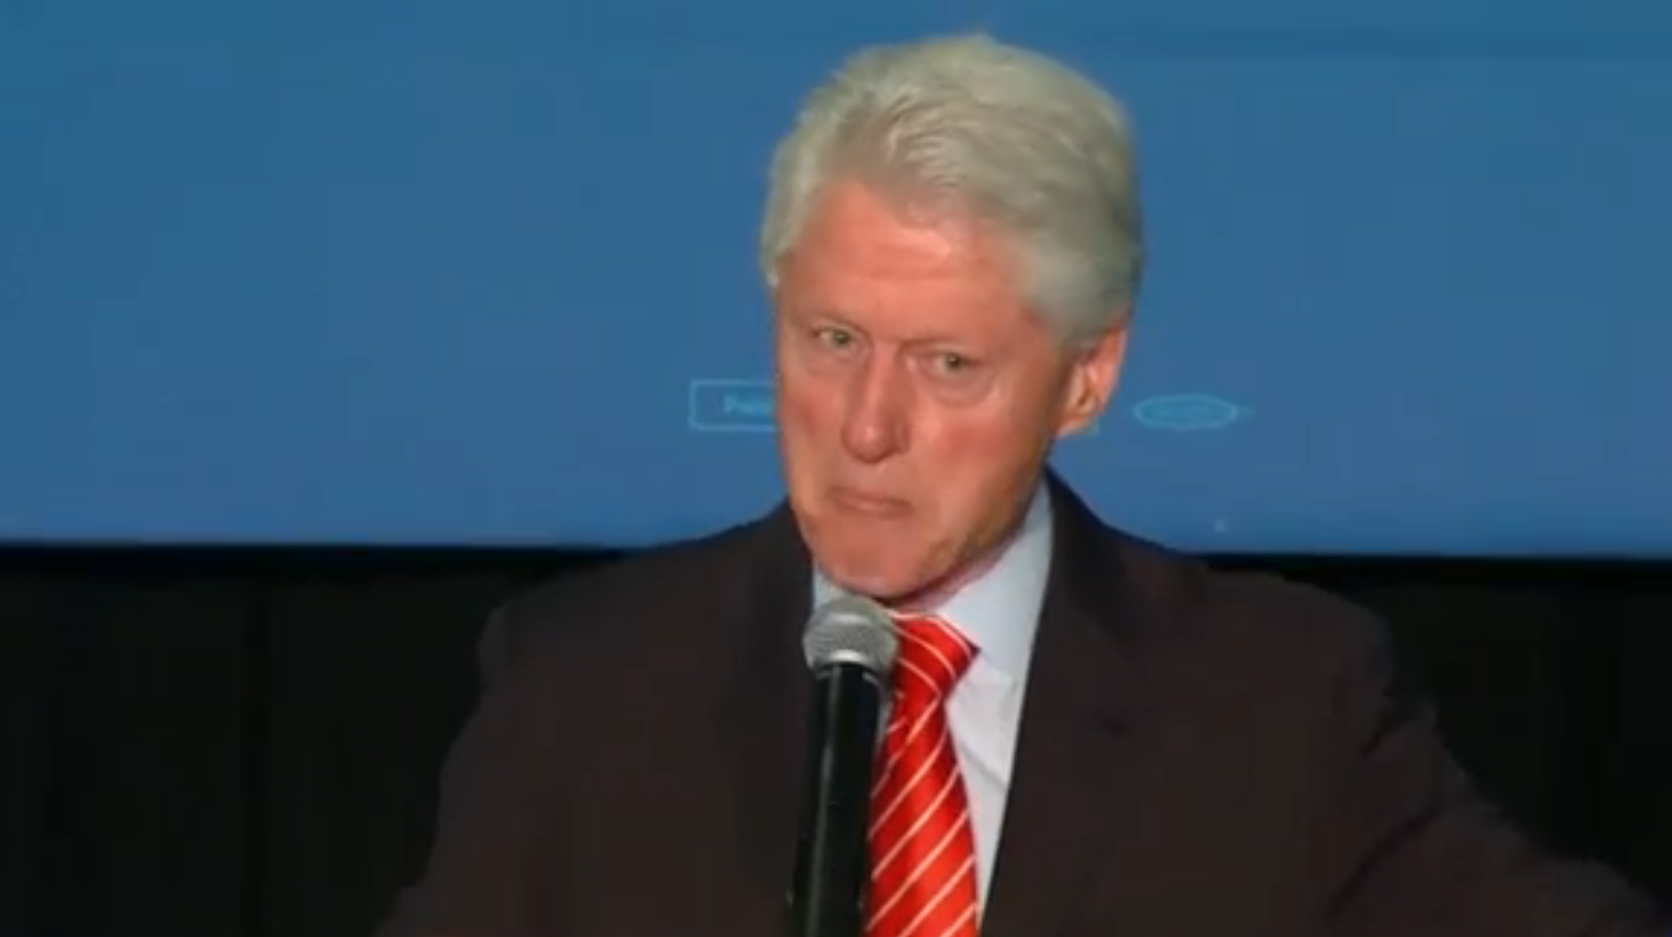 Bill Clinton has heated exchange with protesters at rally for Hillary